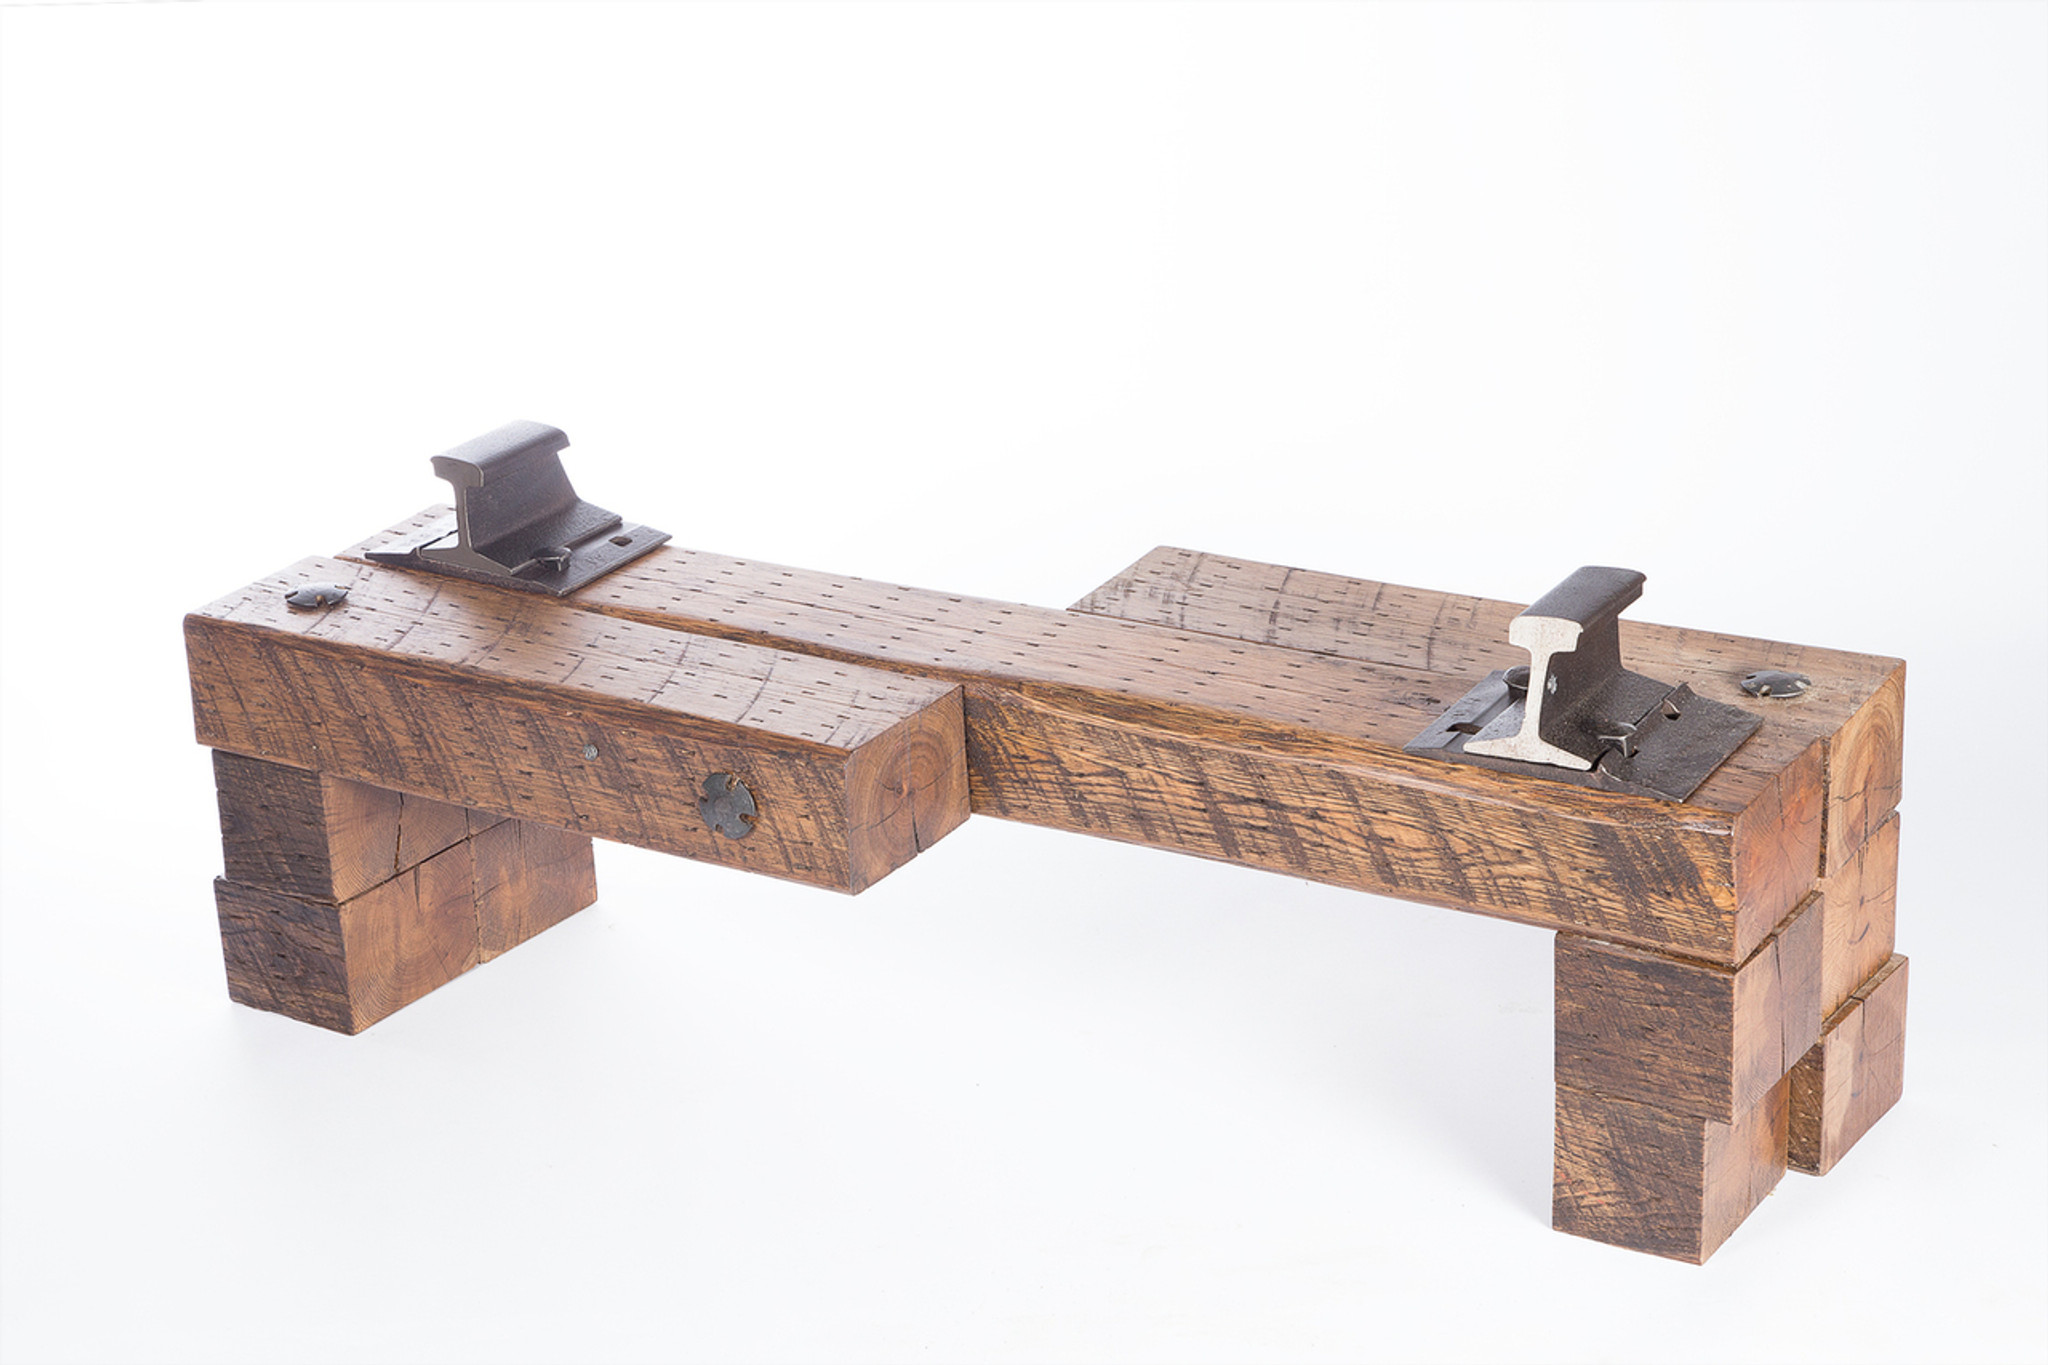 yin yang nested bench for opposite facing conversation and discussion